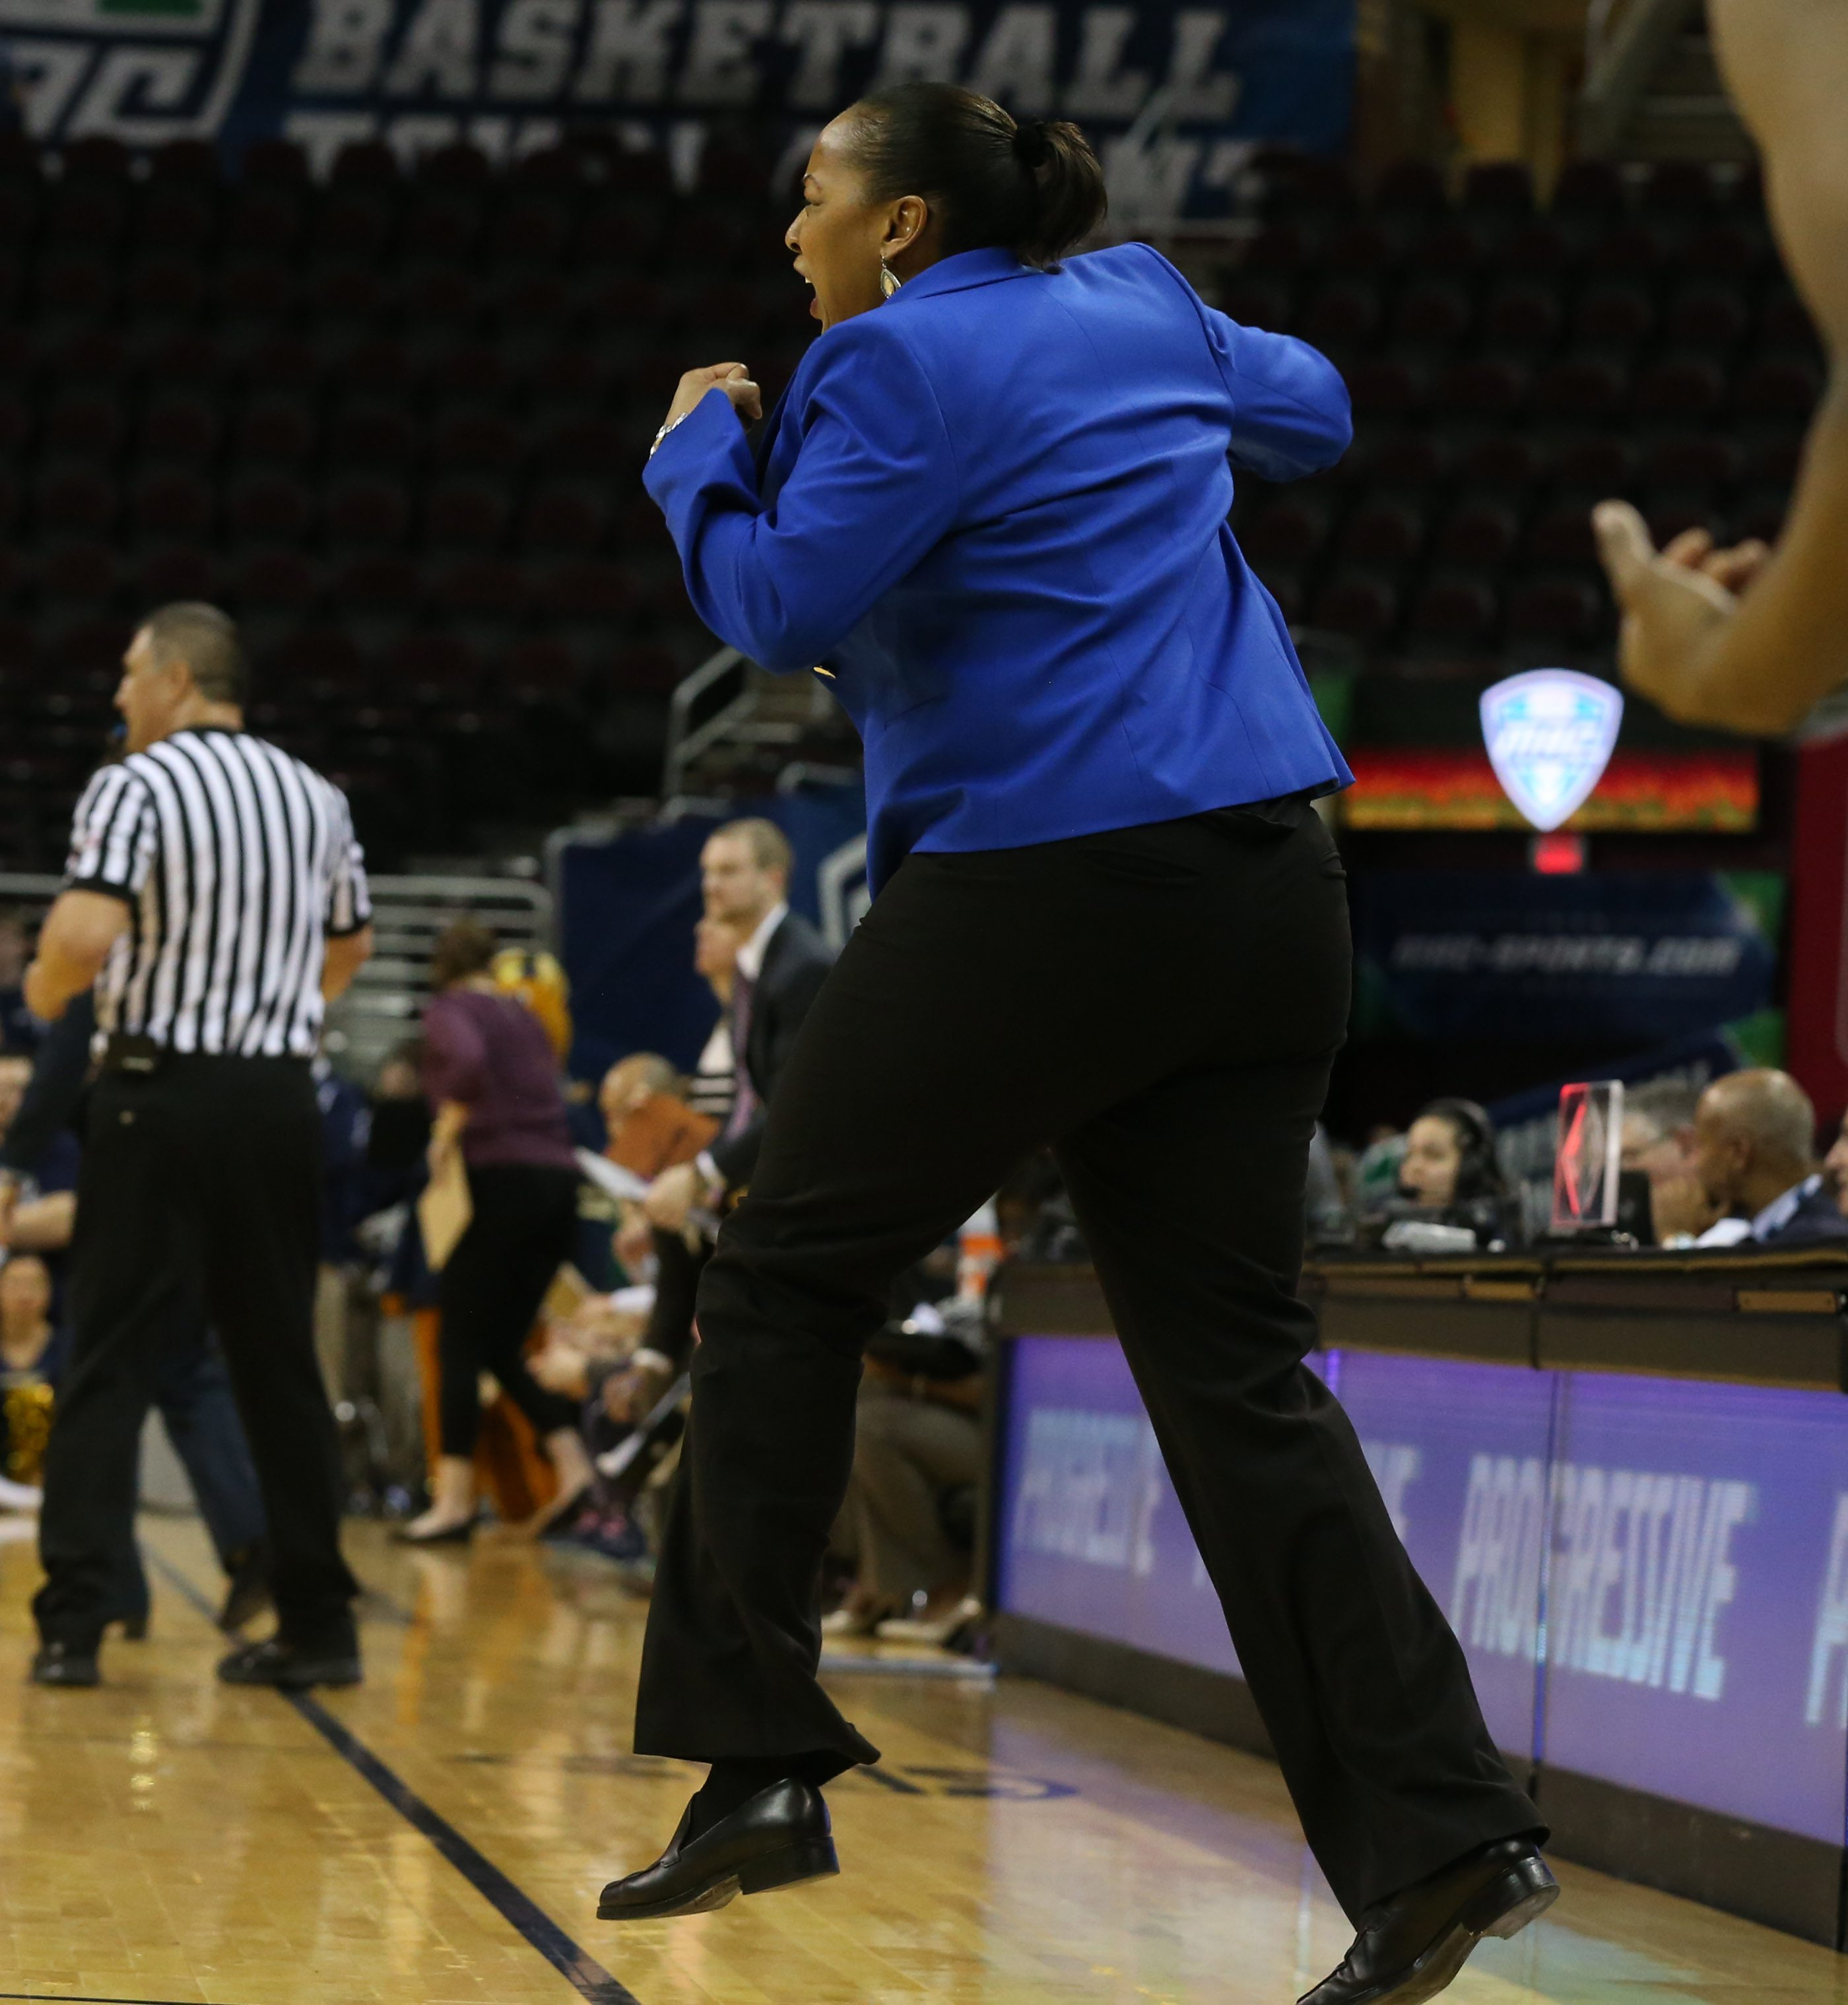 Buffalo Bulls head coach Felisha Legette-Jack celebrates in the final seconds of the semi final. UB won 88-87 to advance to the MAC Championship on Saturday at Quicken Loans Arena in Cleveland,NY on Friday, March 11, 2016. (James P. McCoy/ Buffalo News)